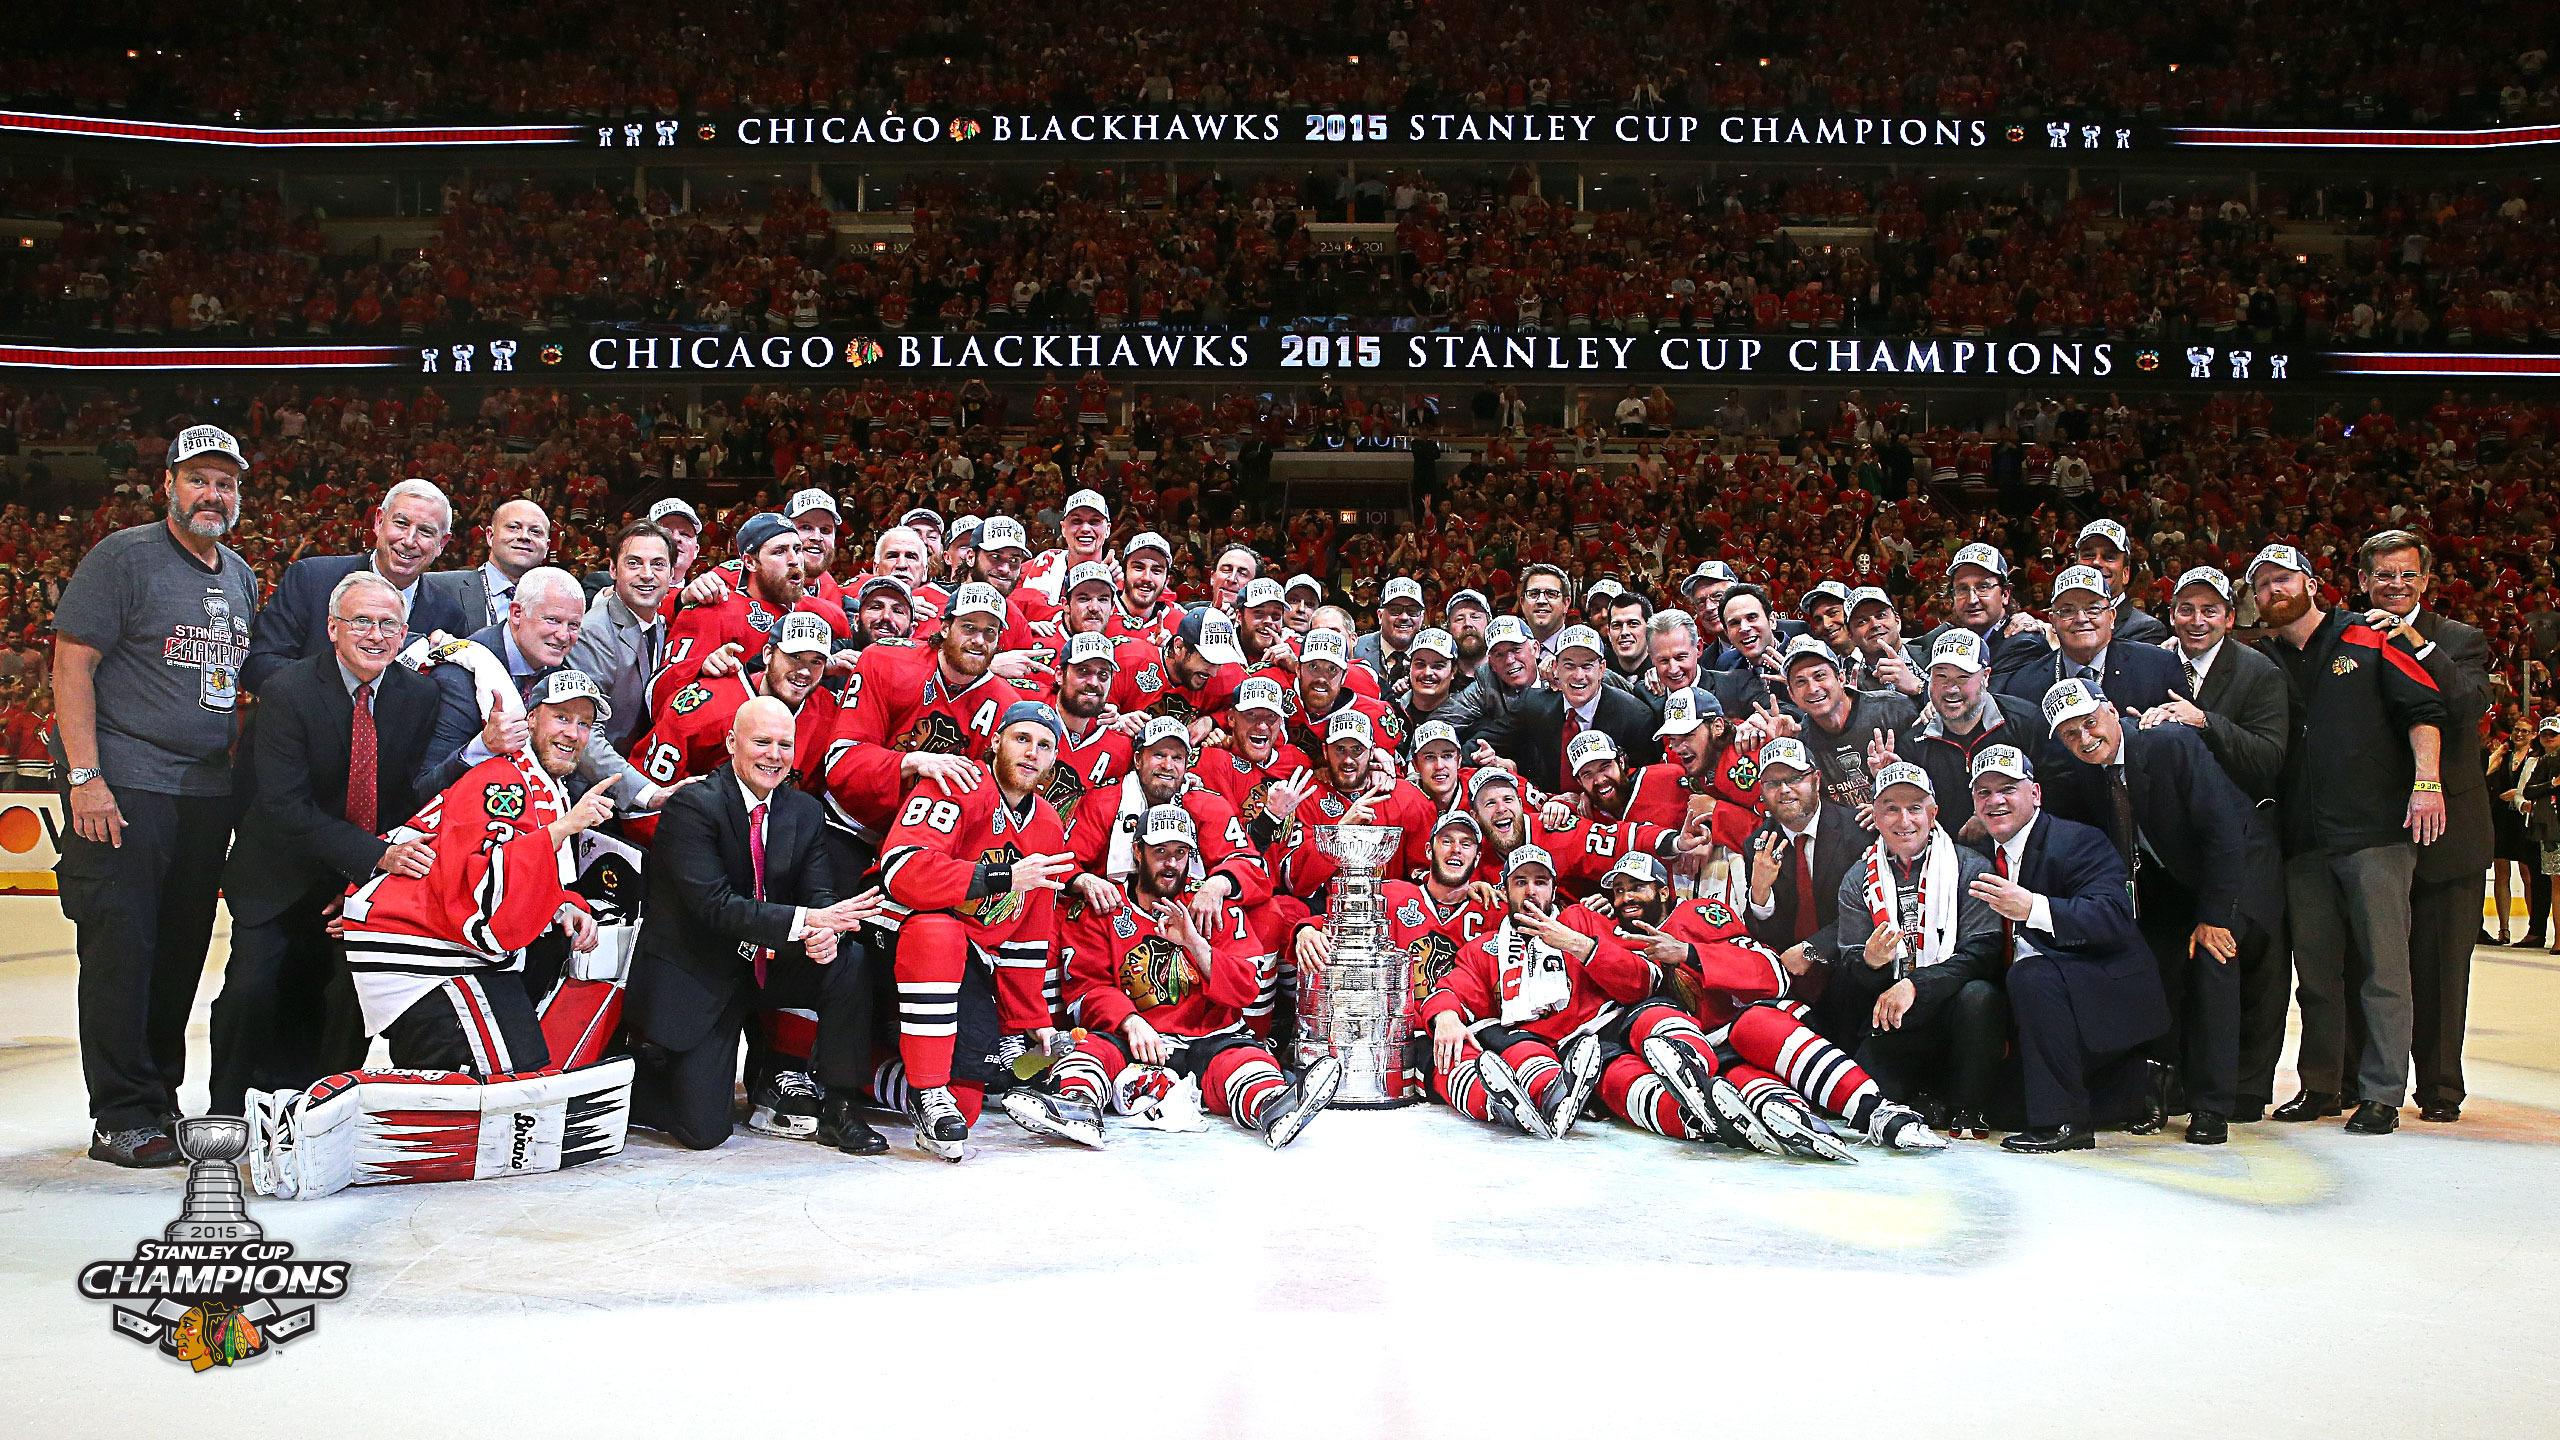 Chicago Blackhawks Stanley Cup - 1342.3KB